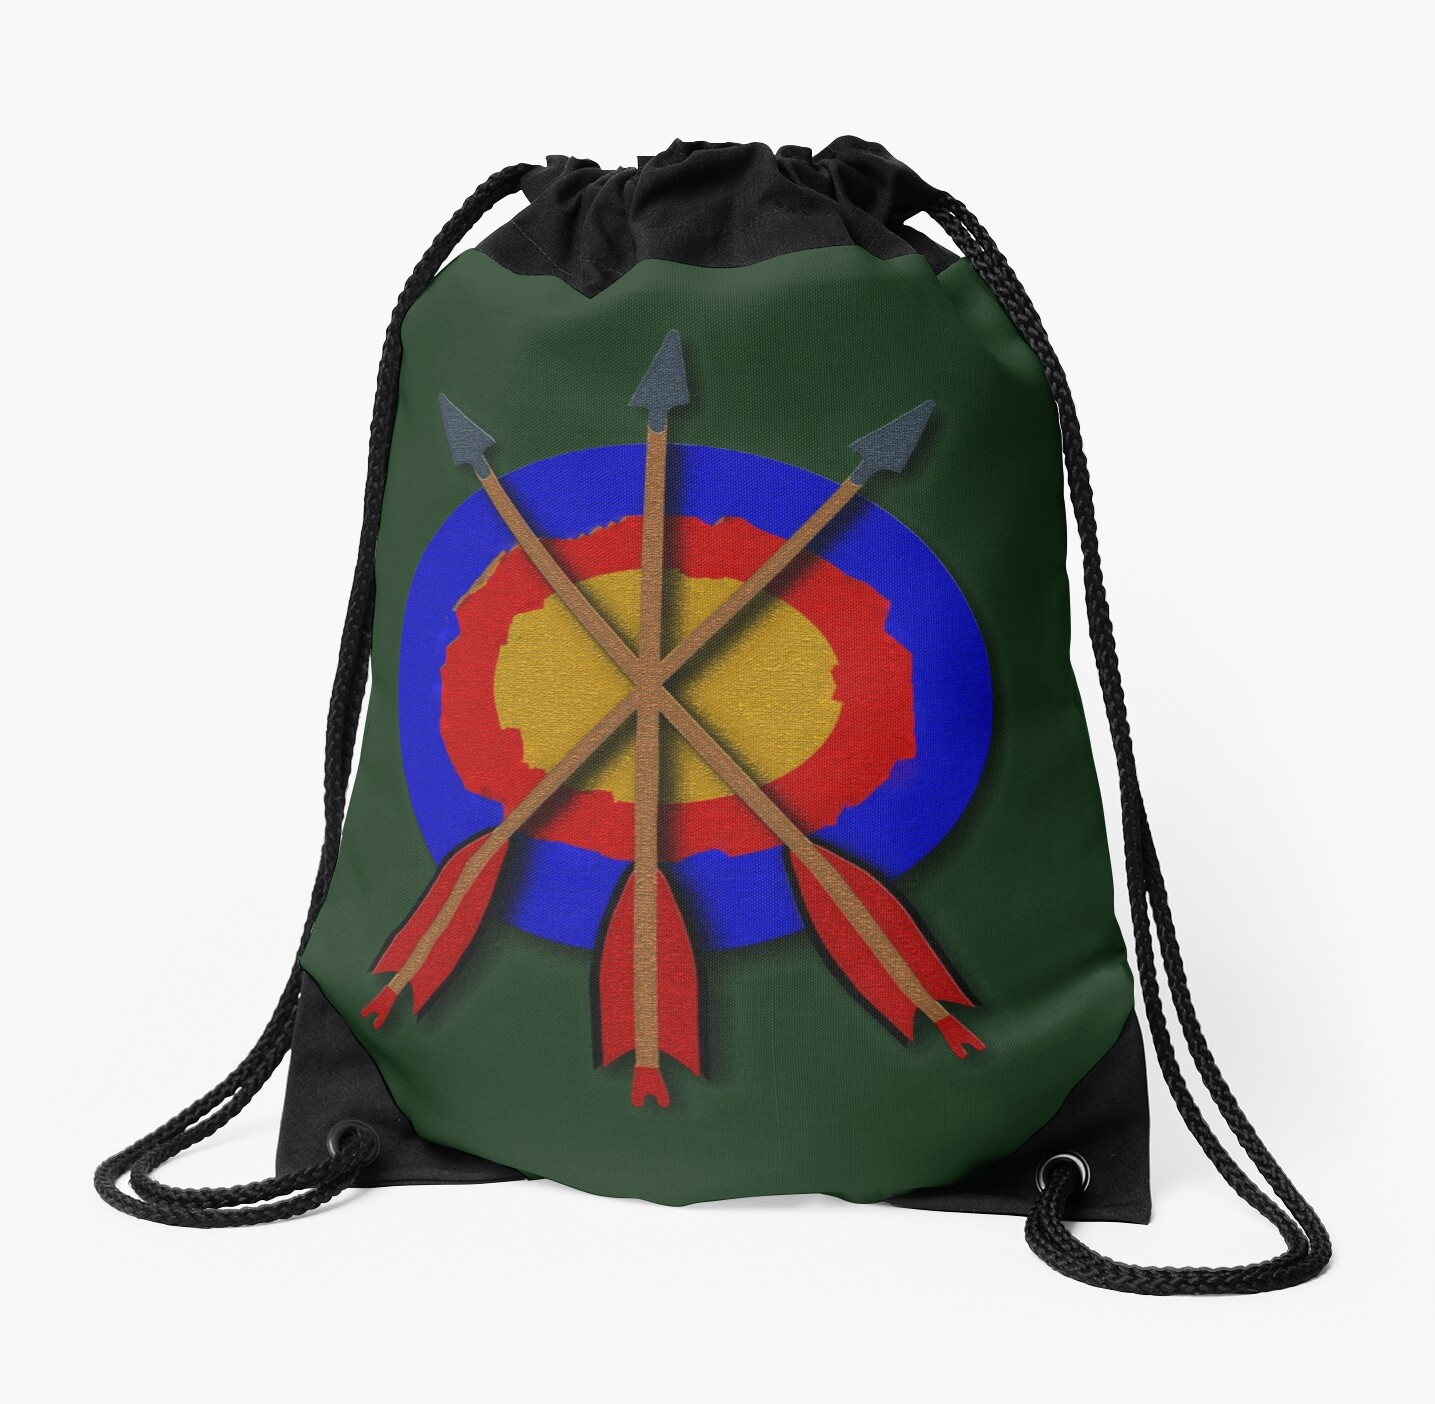 Archery TriniTEE design by patjila